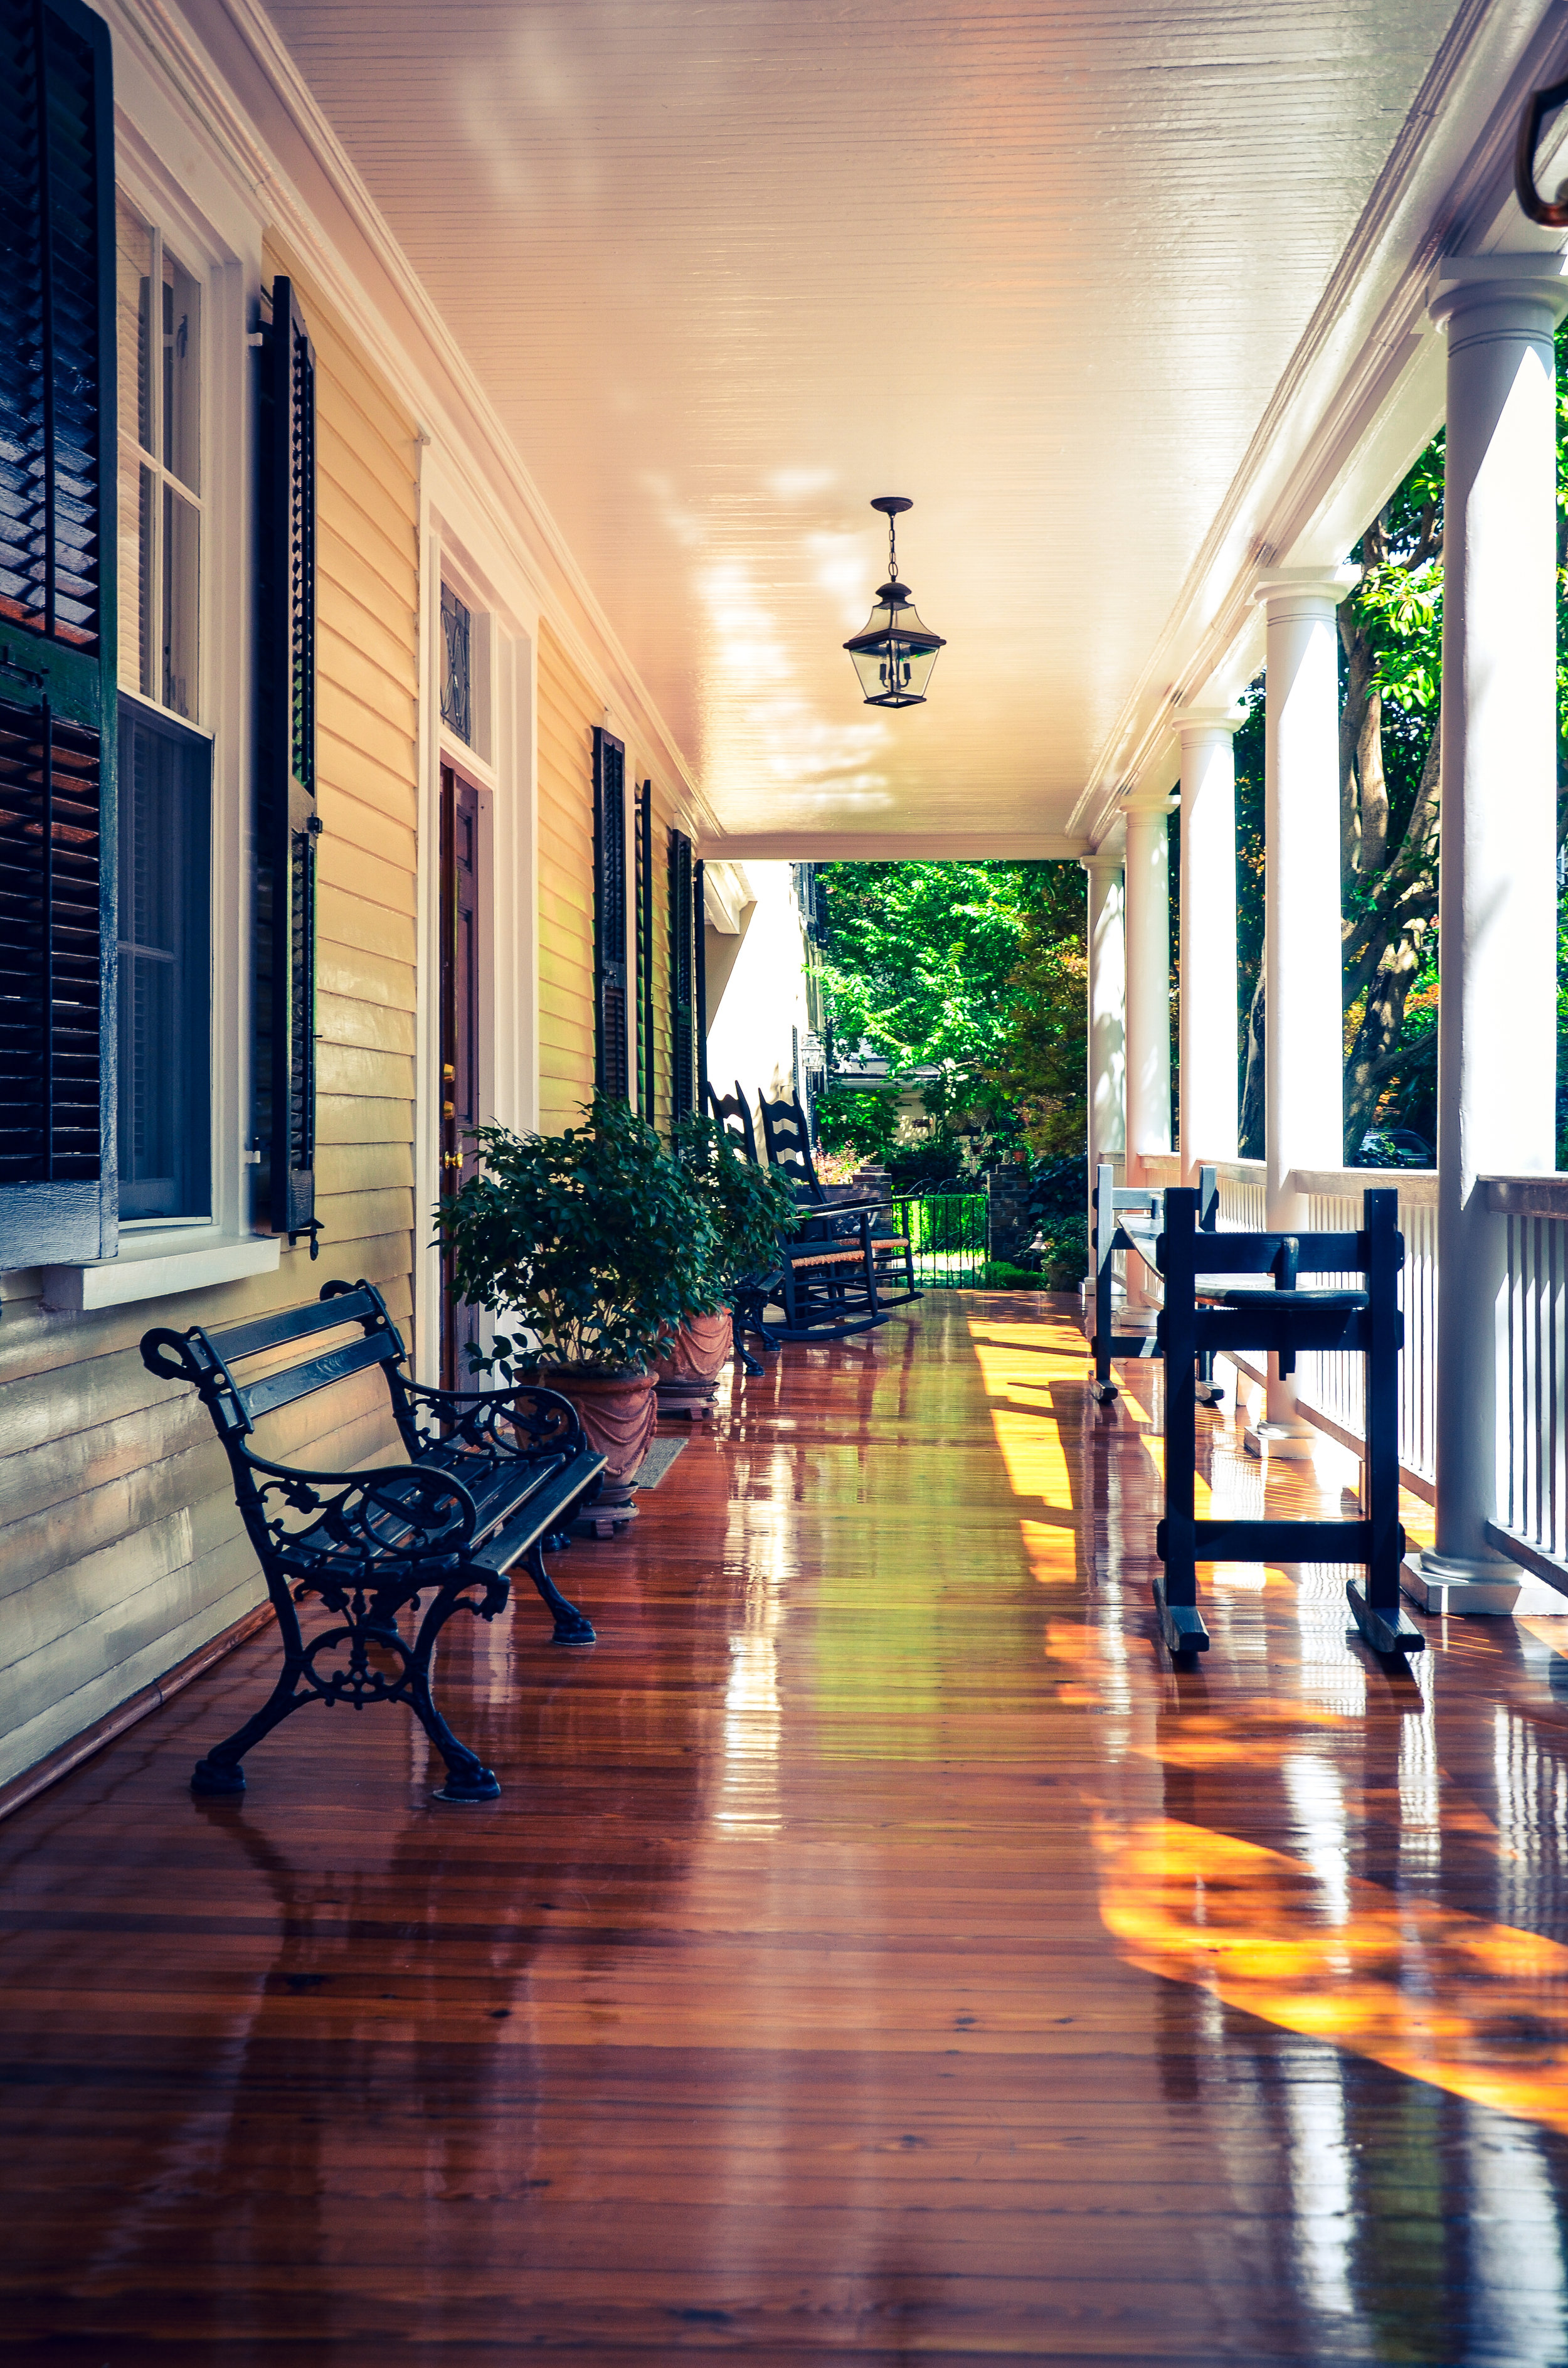 Take an interactive walking tour in downtown Charleston with Charleston Native and Licensed City Tour Guide,Skip Evans. Walking Charleston offers a Civil War & slavery tour, a general history tour and private walking tours upon request.